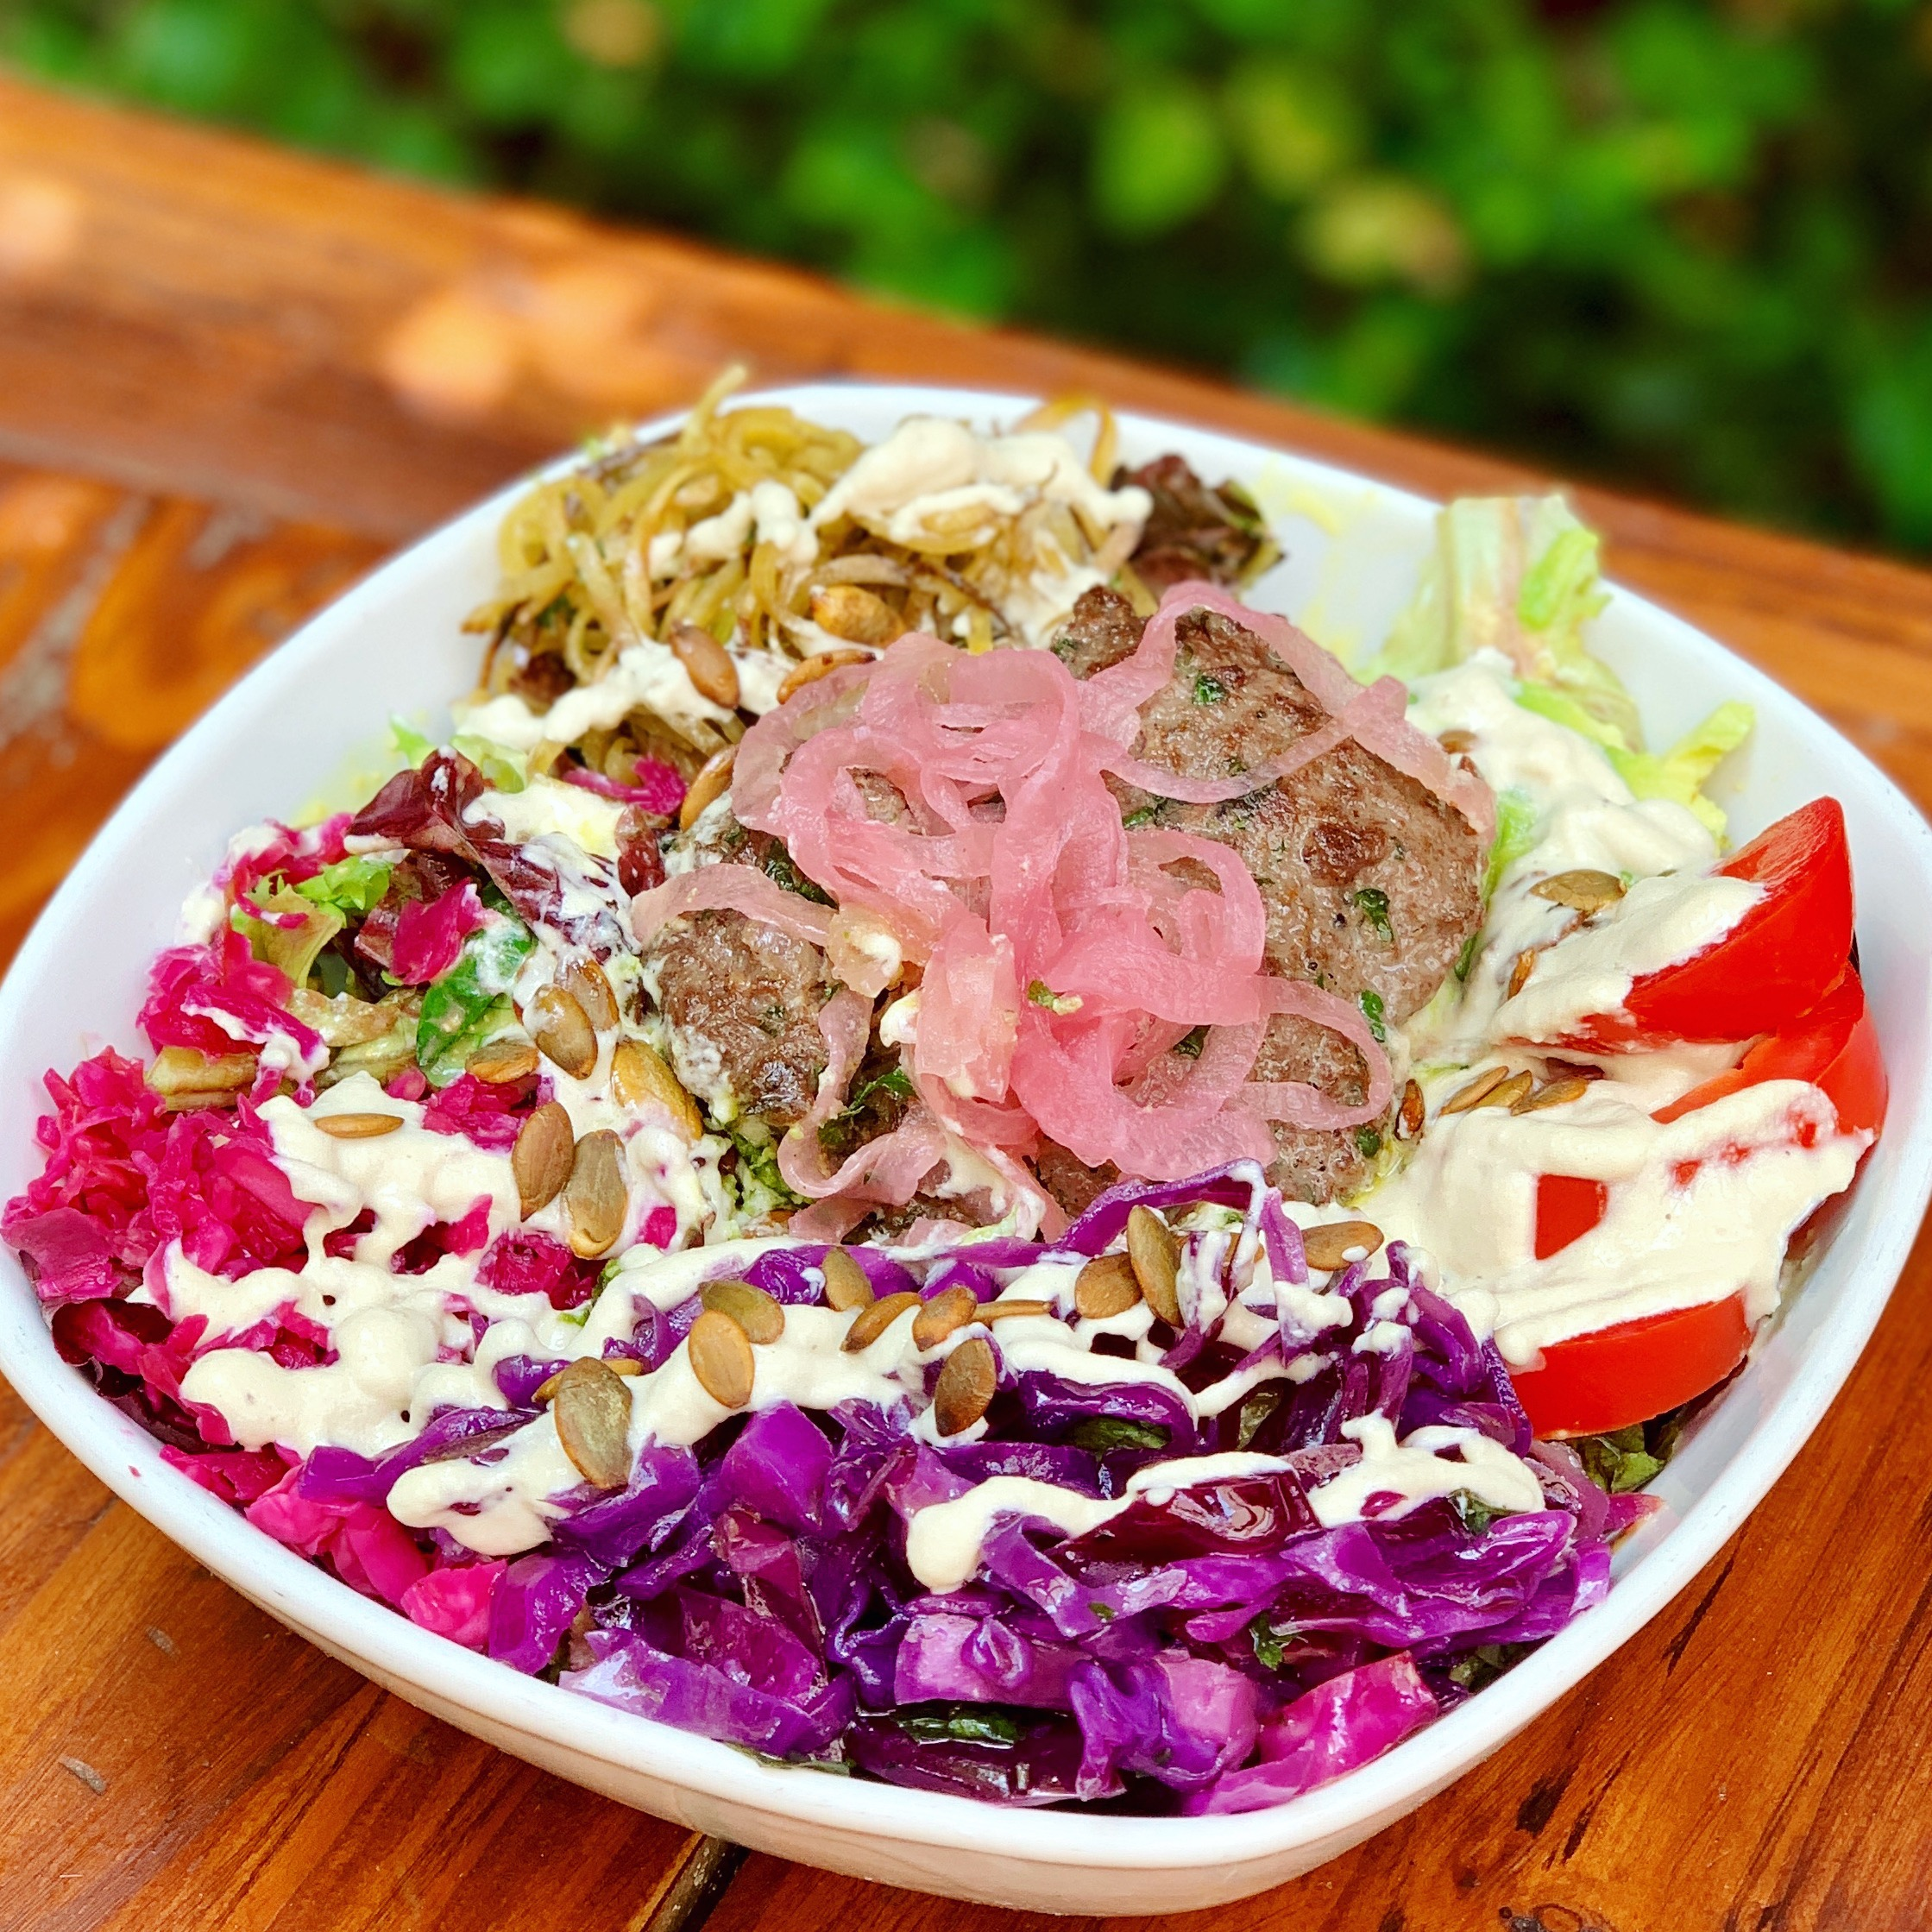 This bowl I ate on our baby moon in Ojai, CA was loaded with probiotics (there were several types of fermented veggies in there and not to mention all the different colors) and other pregnancy-friendly foods (hello grass-fed bison burger).